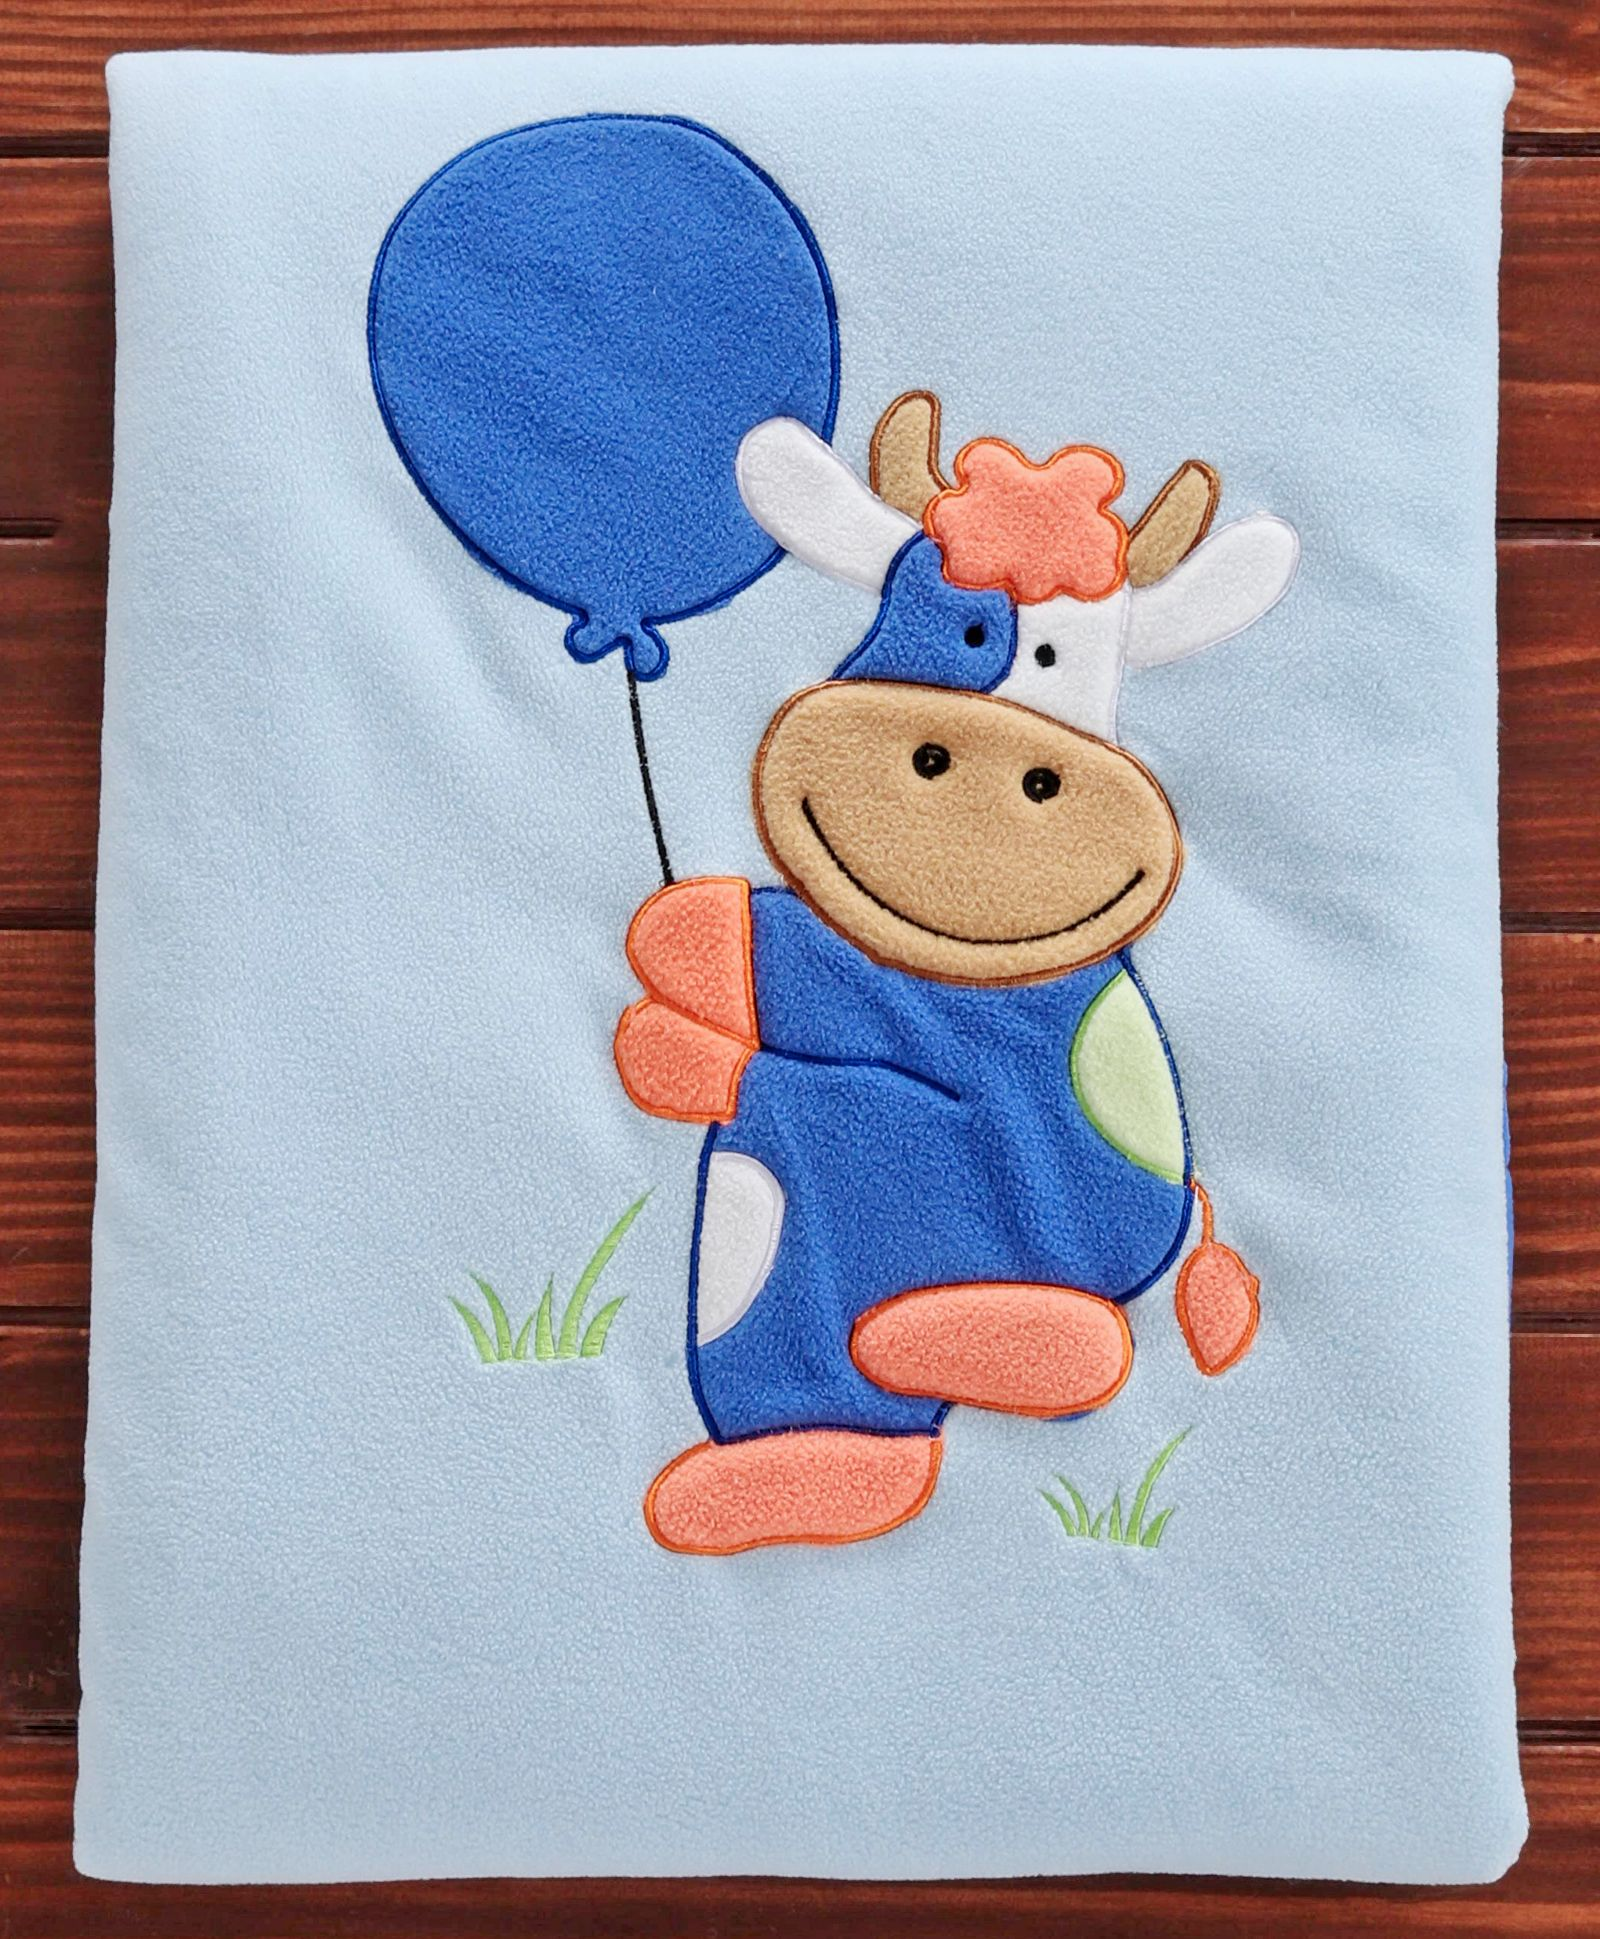 Polyester Baby Blanket Cow Print Blue Online In India Buy At Best Price From Firstcry Com 2956766